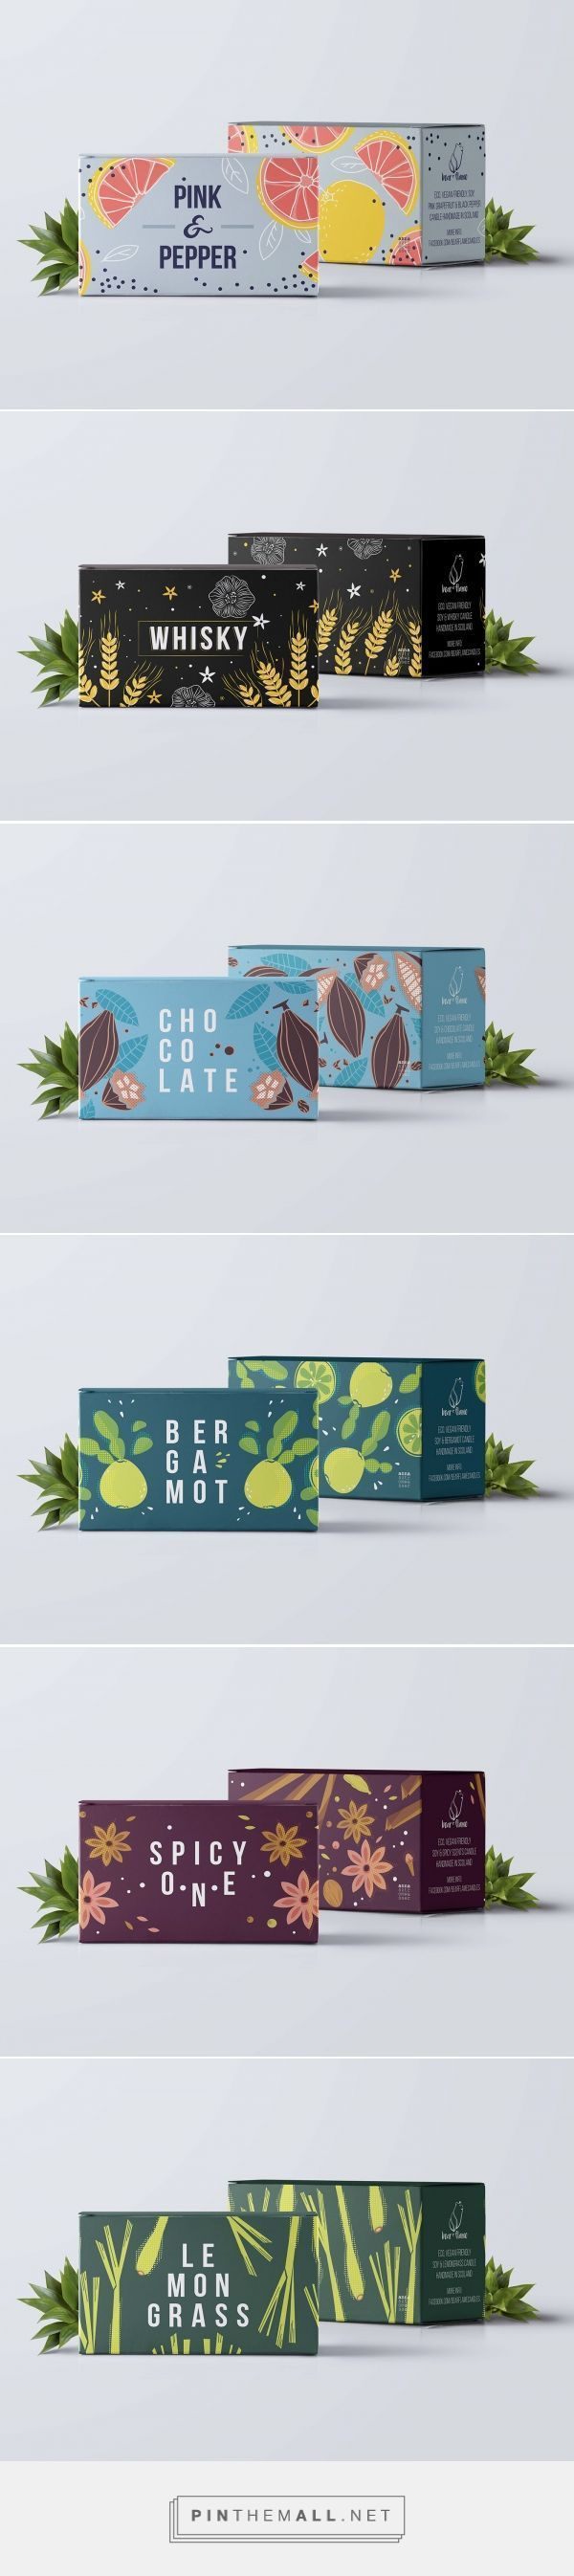 Candles by Anna Sztromwasser. Source: Behance. Pin curated by #SFields99 #packaging #design #inspiration #box #texture #typography: